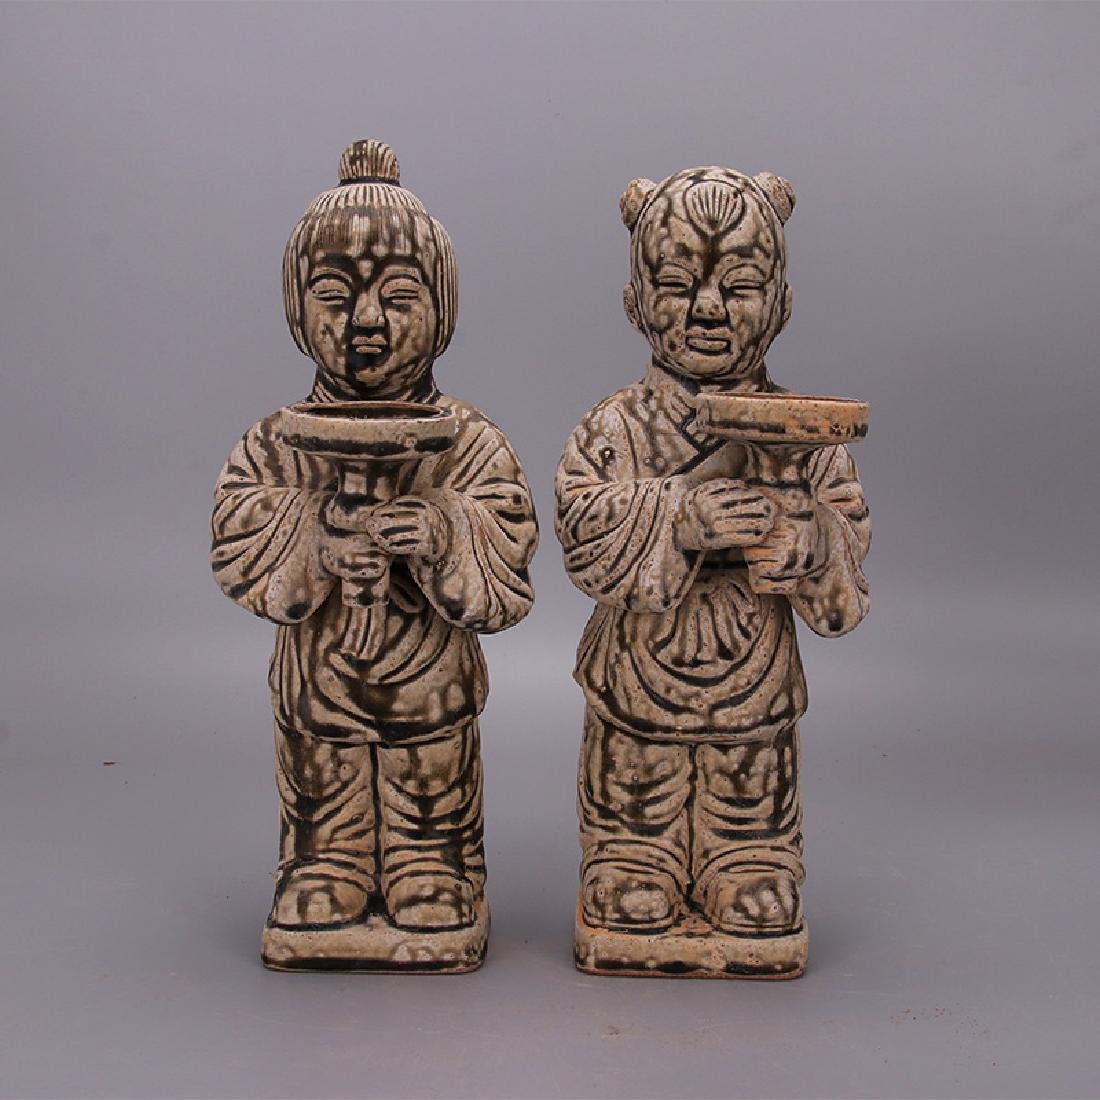 Chinese Song Dynasty Yue Ware Porcelain Dolls in Pair